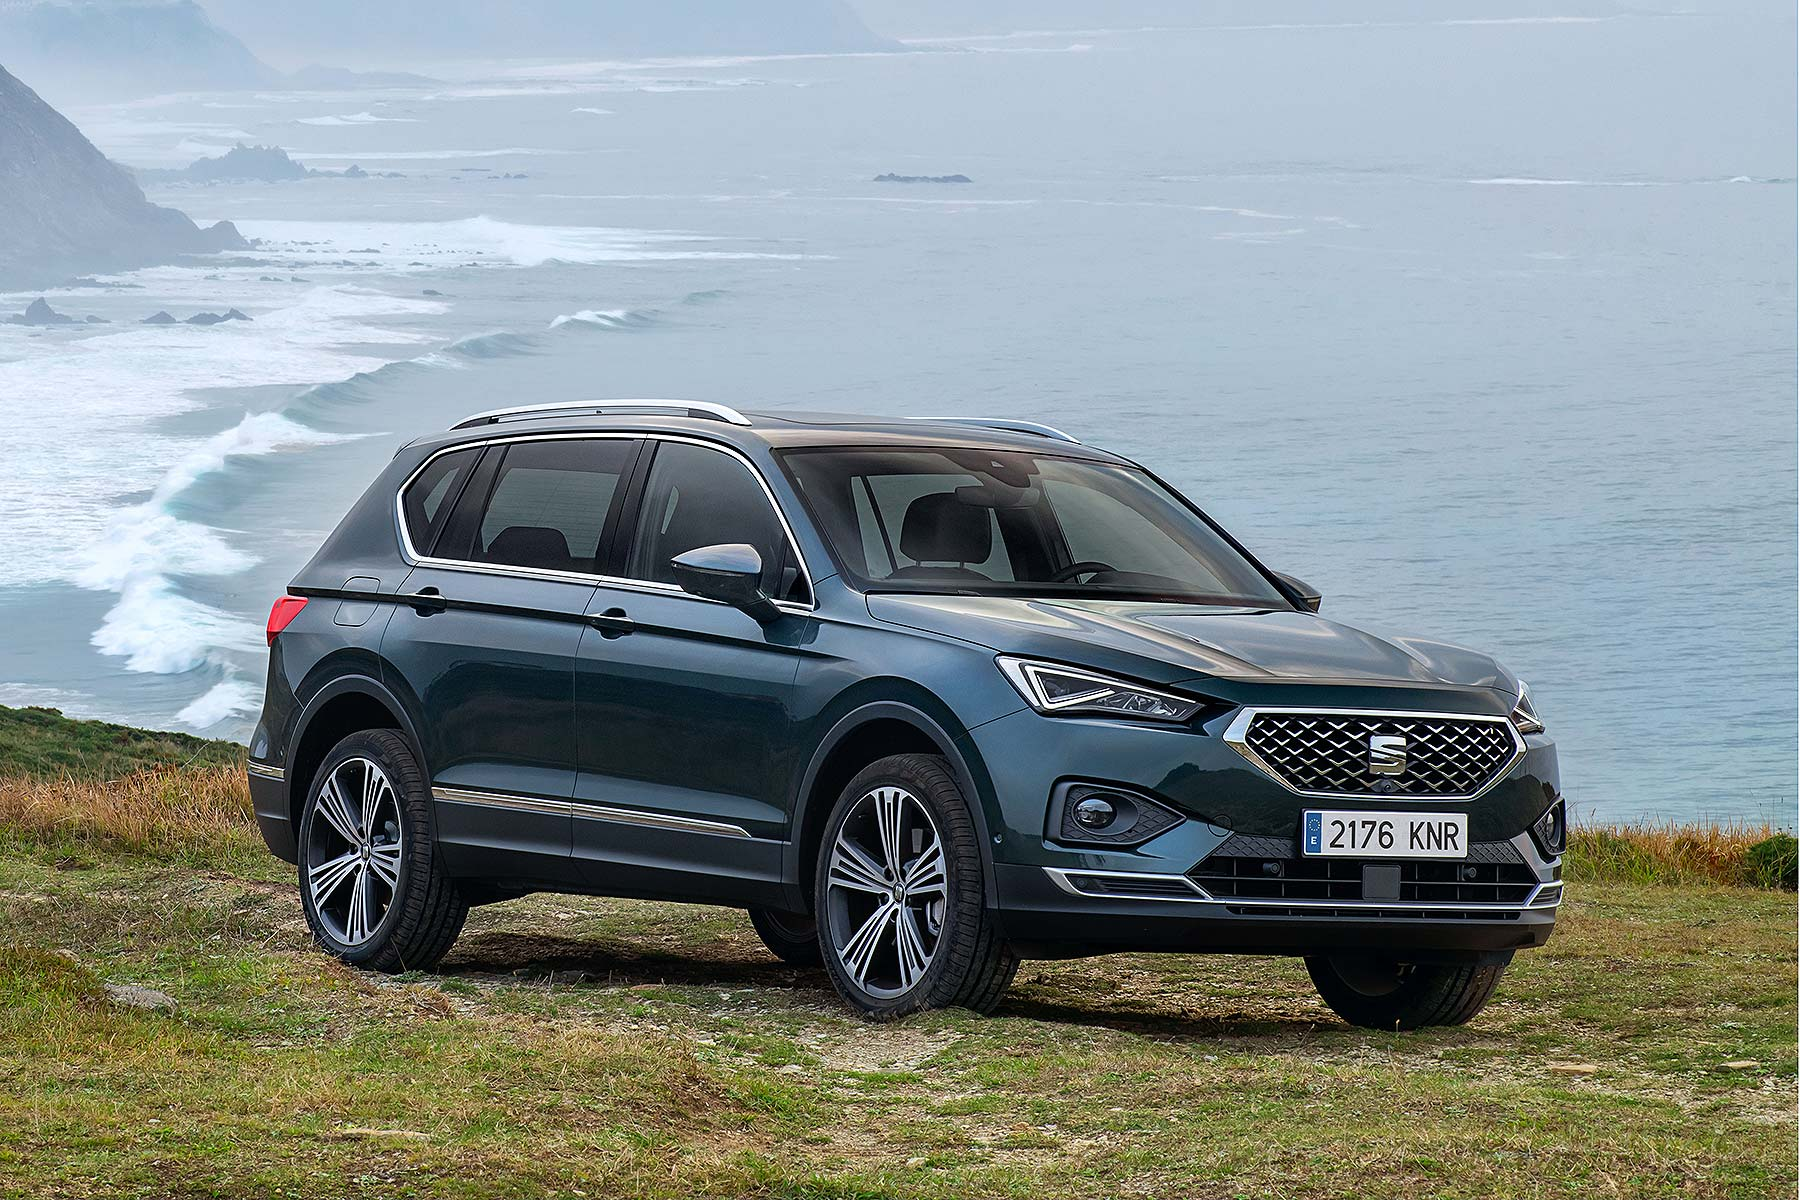 seat tarraco large 7 seat suv now on sale in britain motoring research. Black Bedroom Furniture Sets. Home Design Ideas